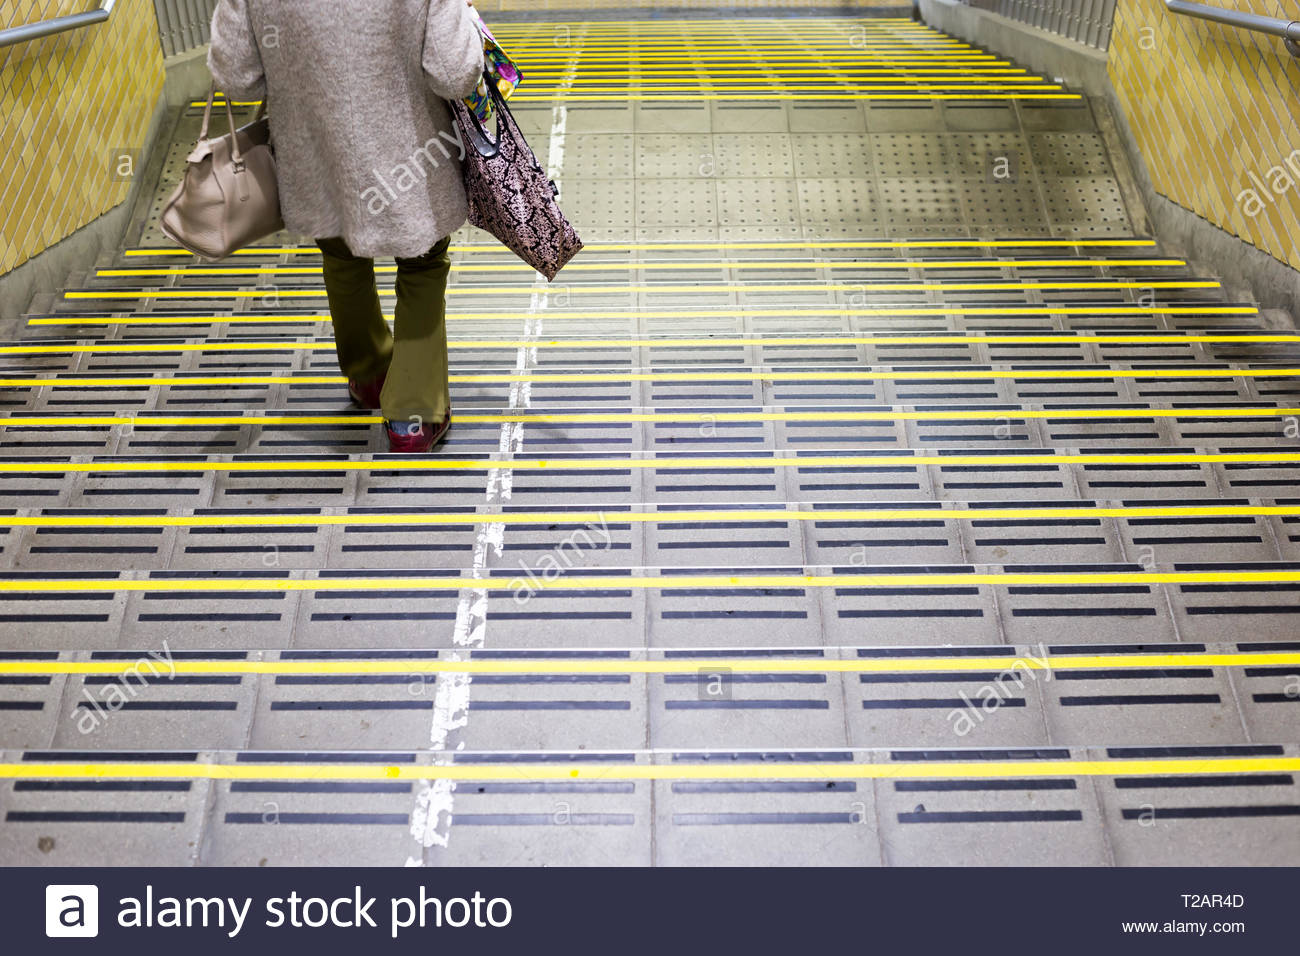 Chiba, Japan, 03/28/2019 , Stair of Chiba station, with a woman walking to the platform, at 5:30 am. - Stock Image